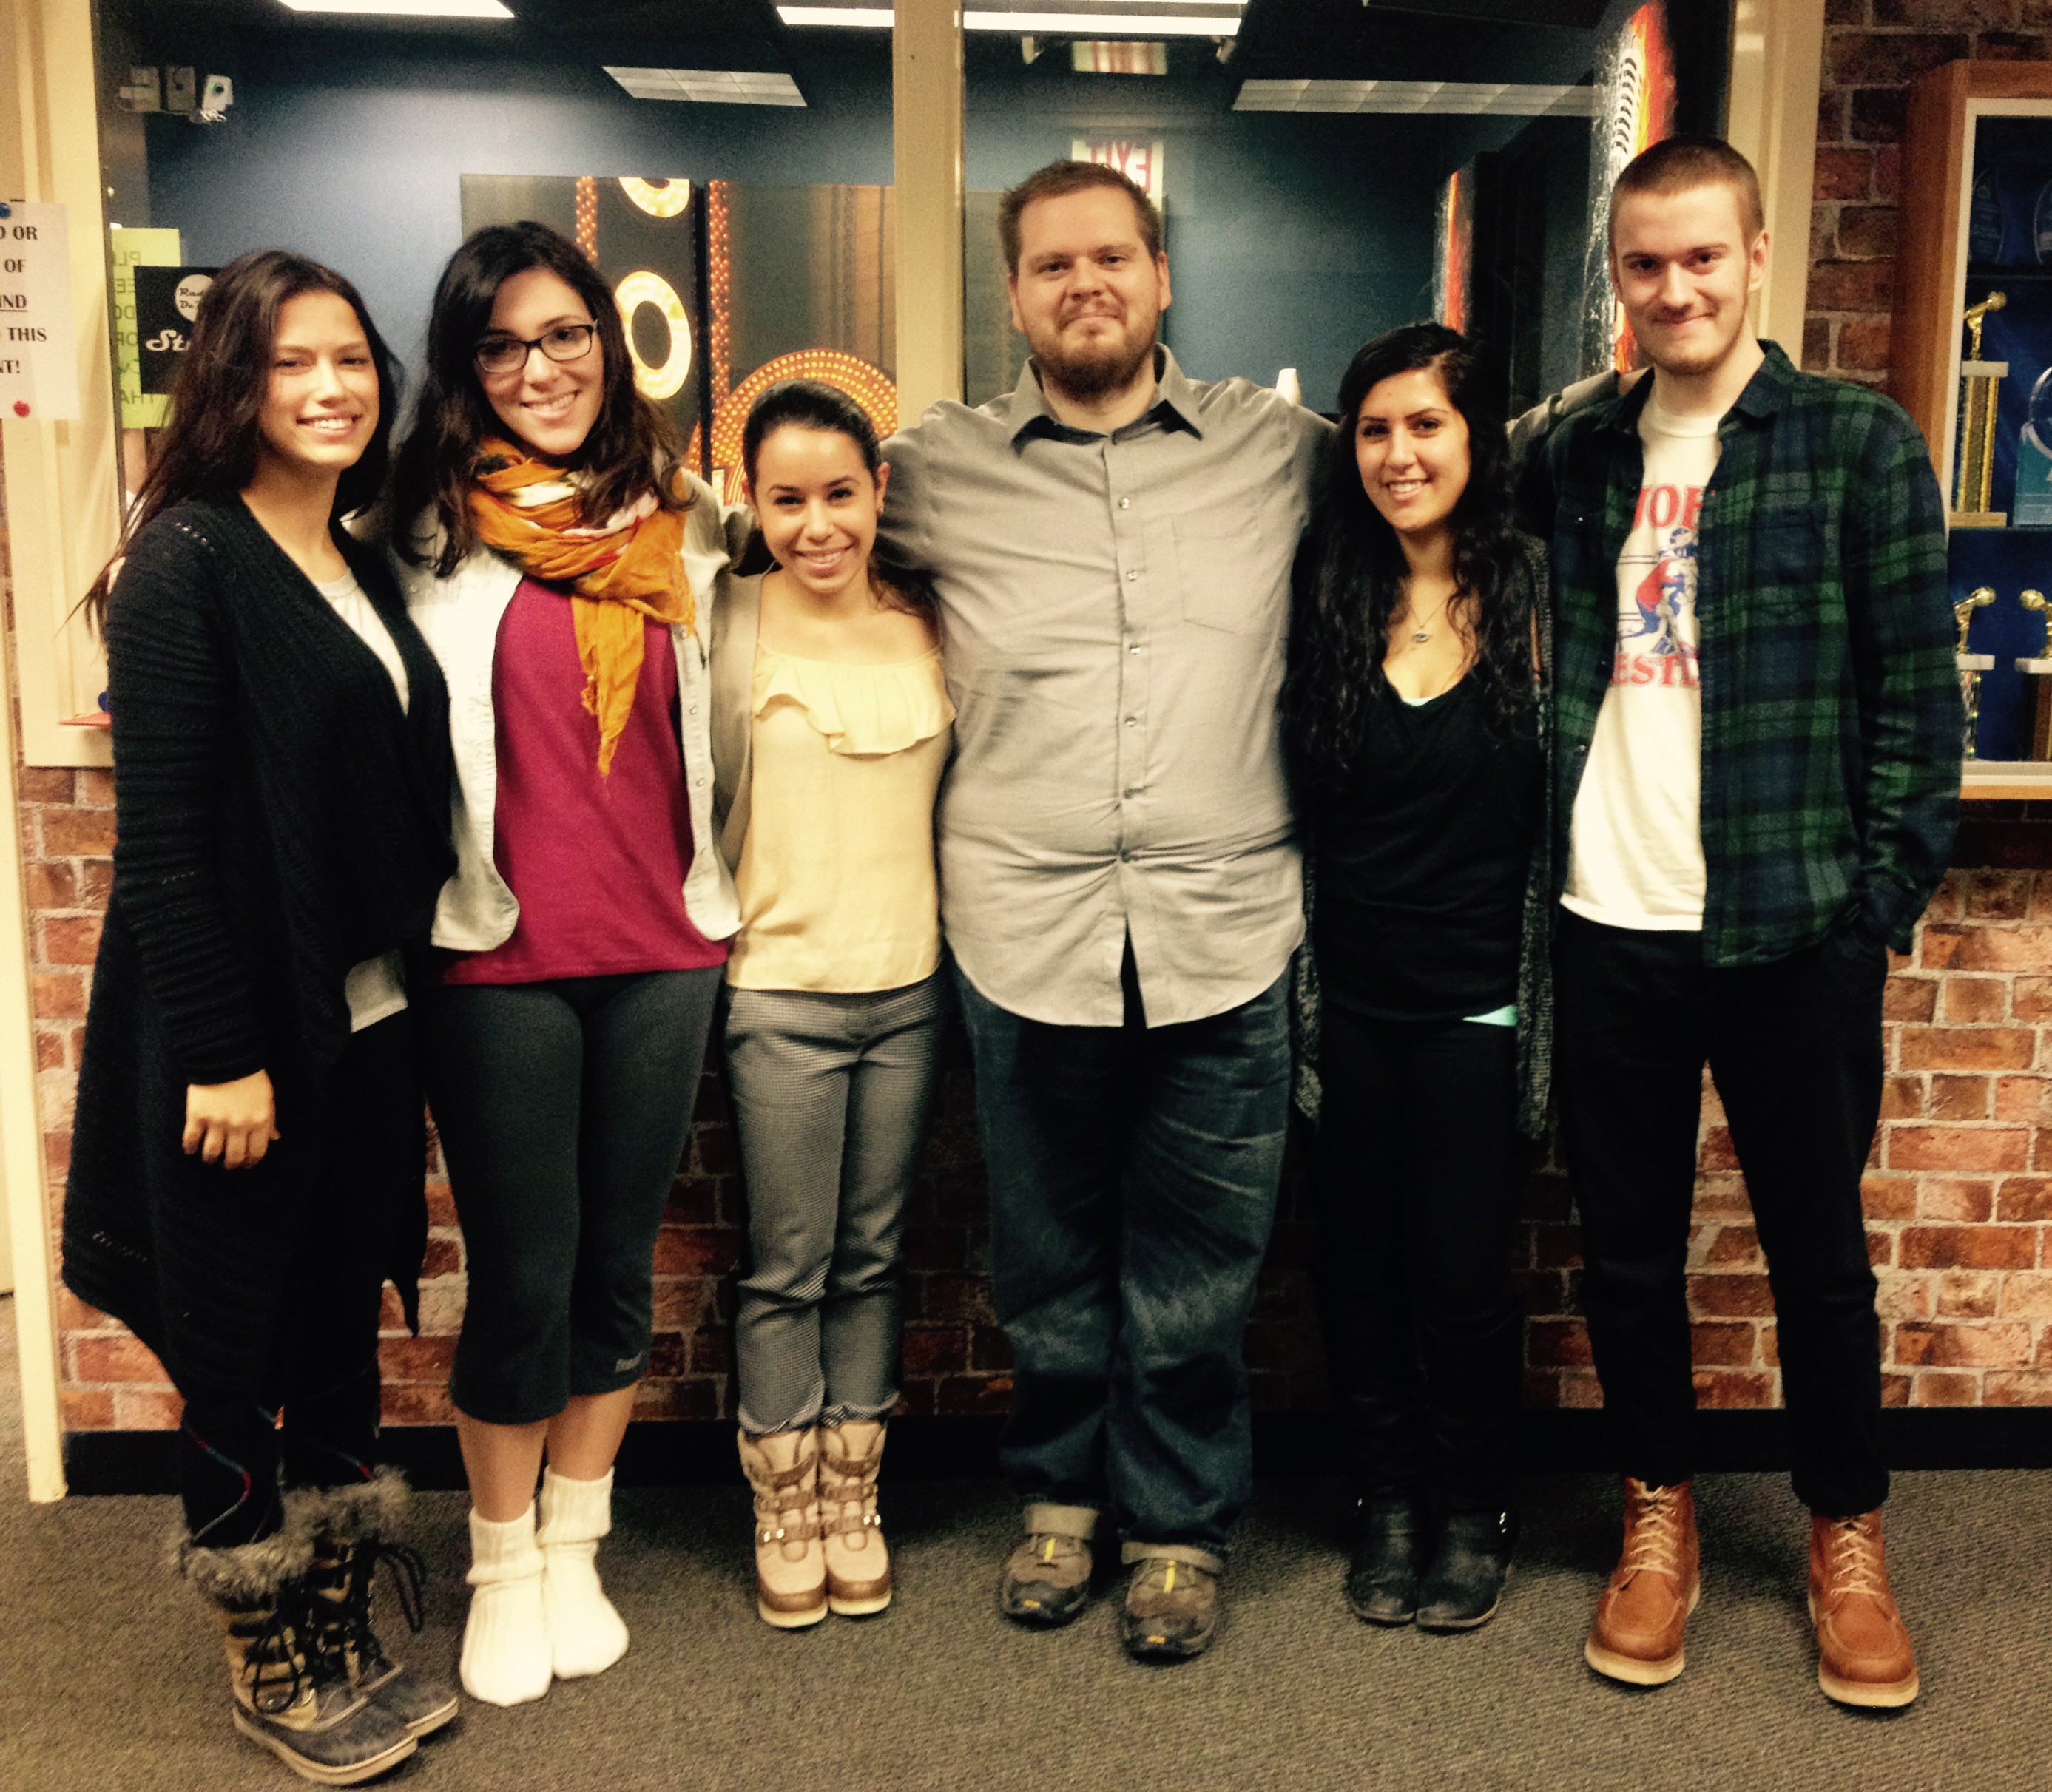 This week Scrawl was joined by the EDGE students! (L-R) Mariah, Megan, EDGE student Gen, Brandon, Rima, EDGE student Will.